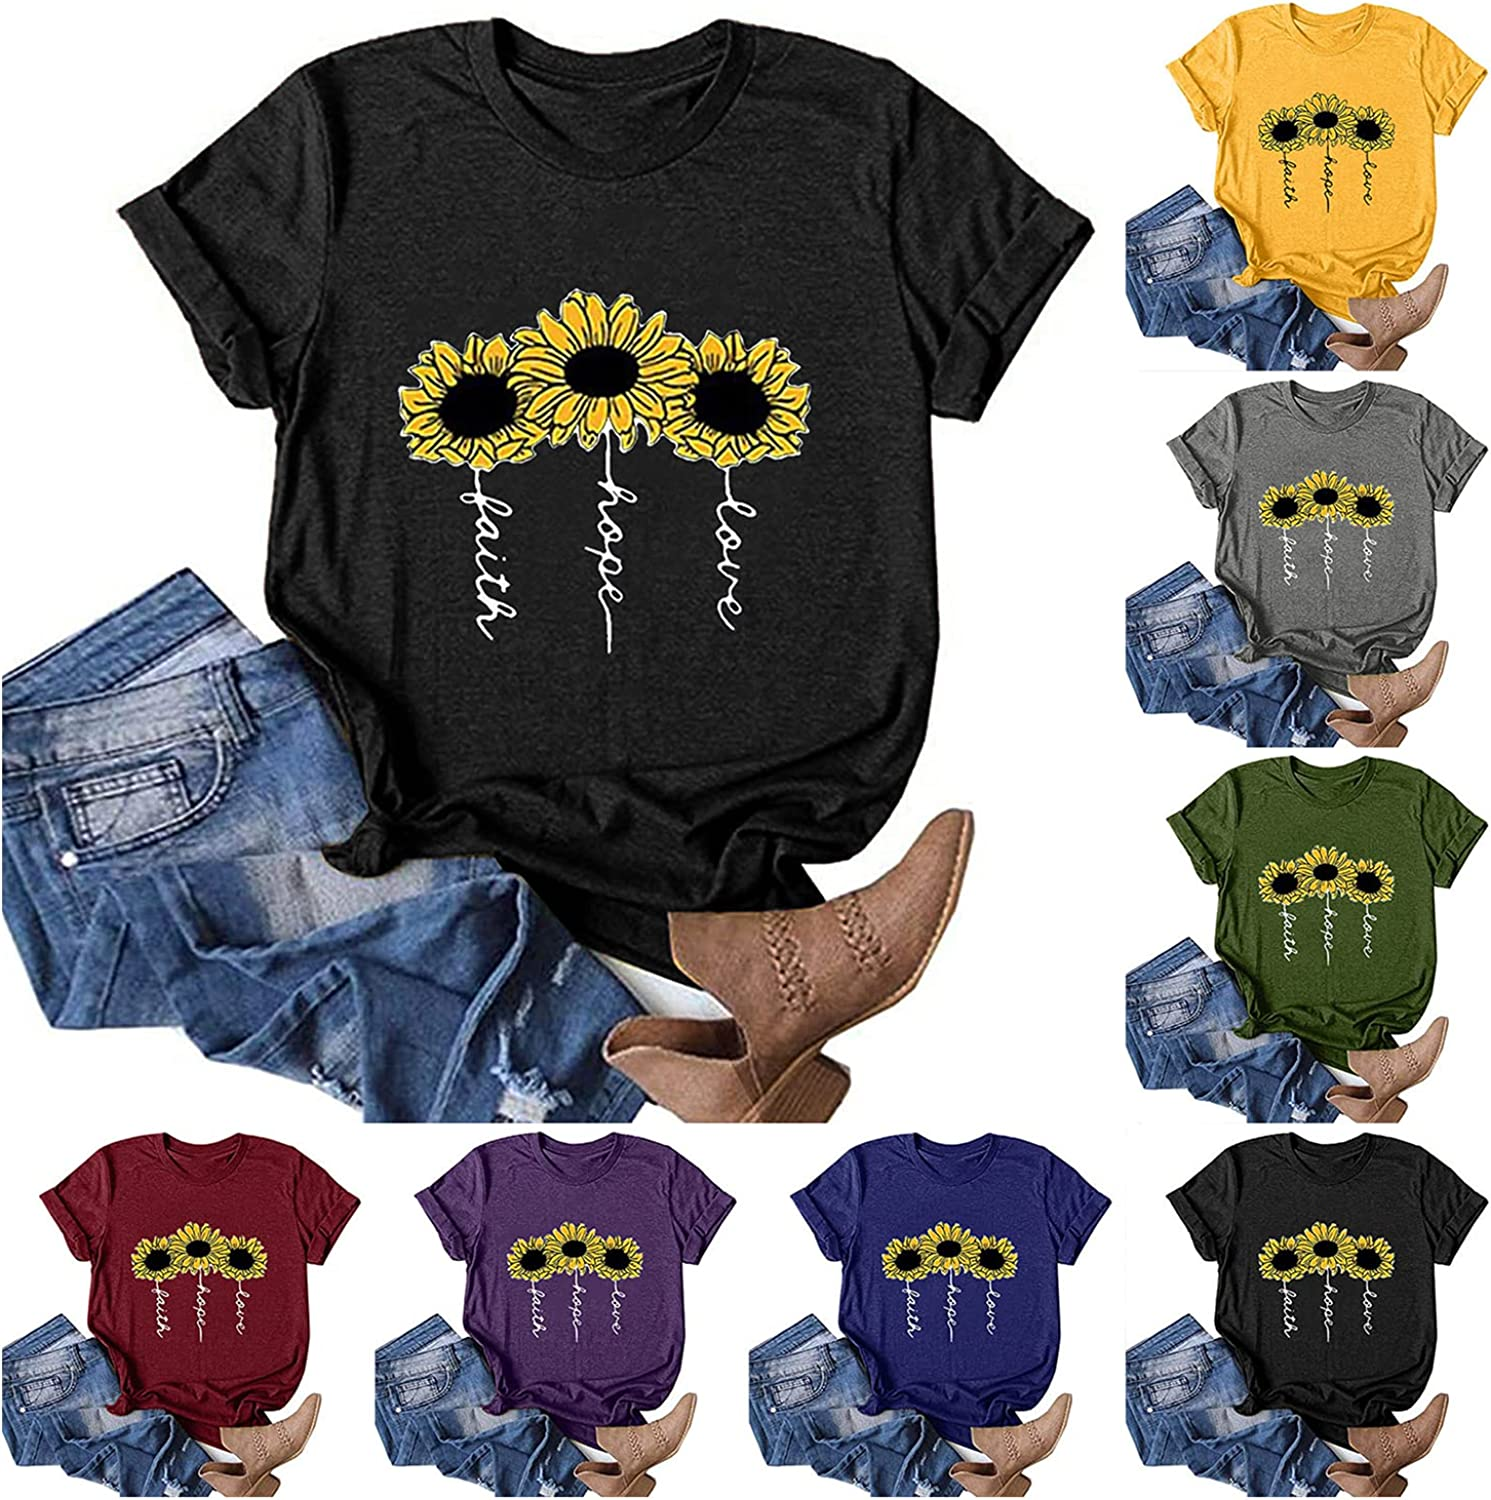 MASZONE Women's Summer Tops Crewneck Loose Fit Top Short Sleeve T-Shirts for Women Casual Funny Sunflower Print Tunic